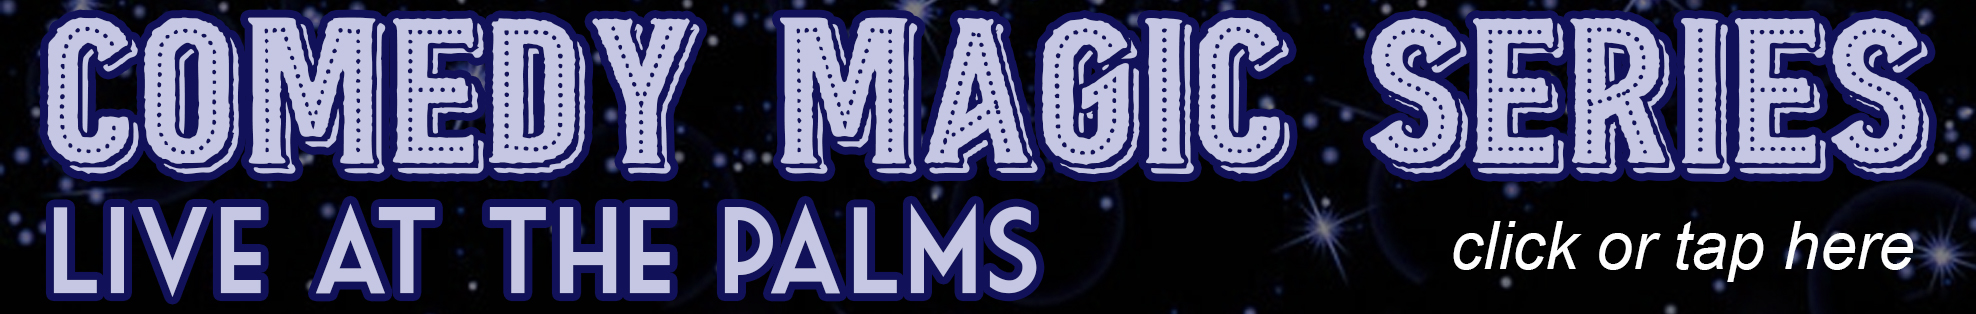 Comedy Magic Series Live at the Palms - click or tap here